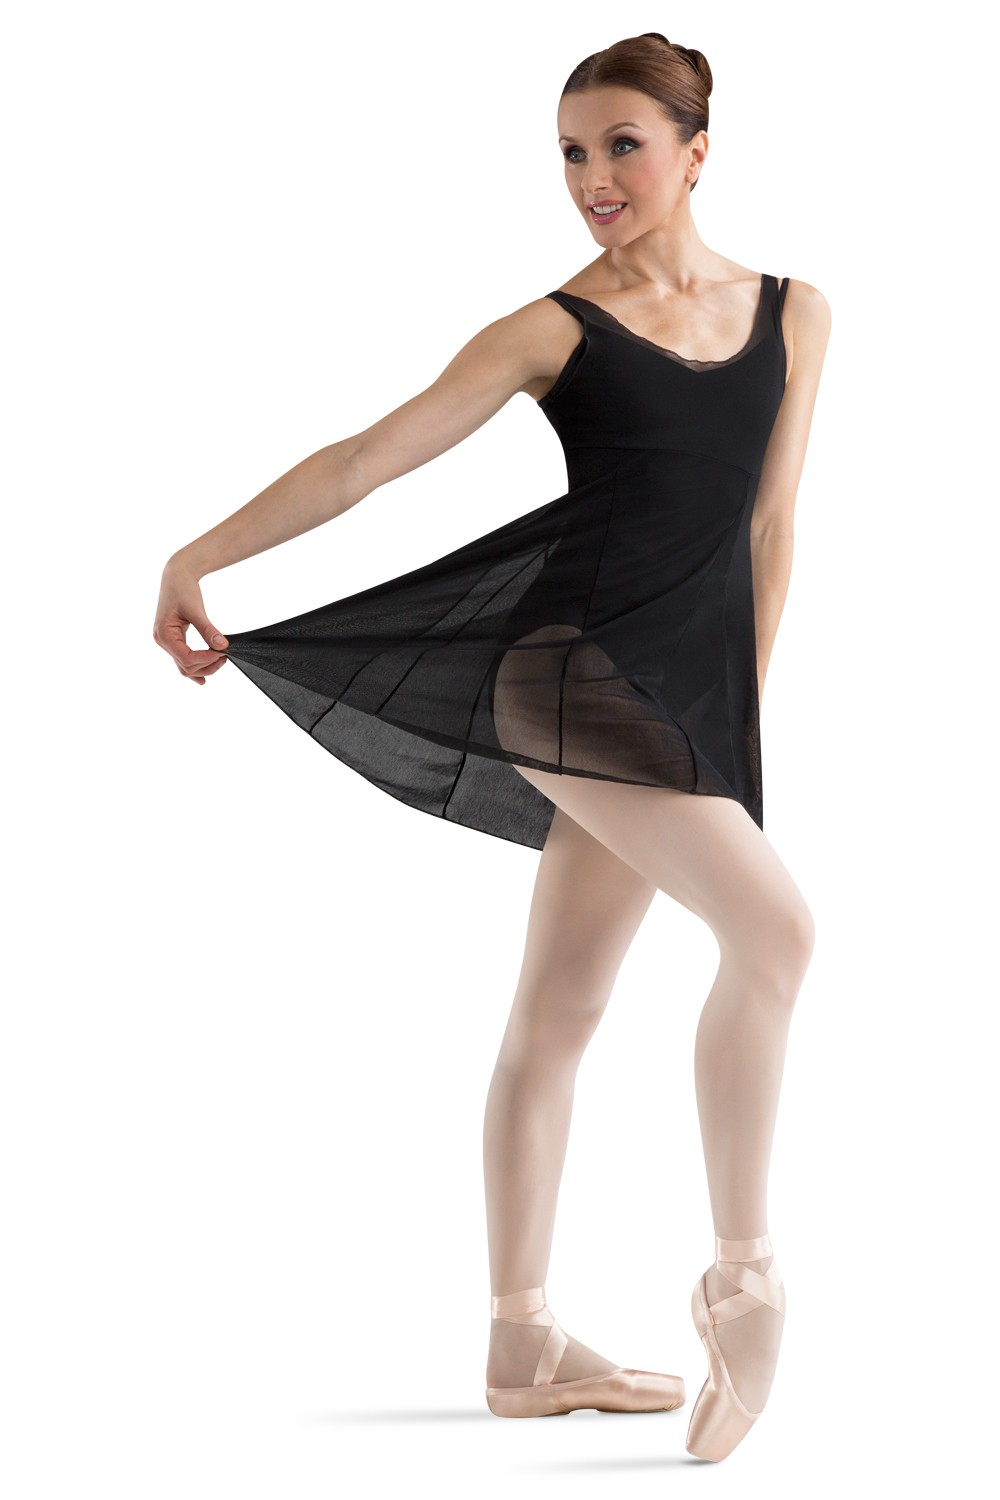 Emerge Women's Dance Skirts